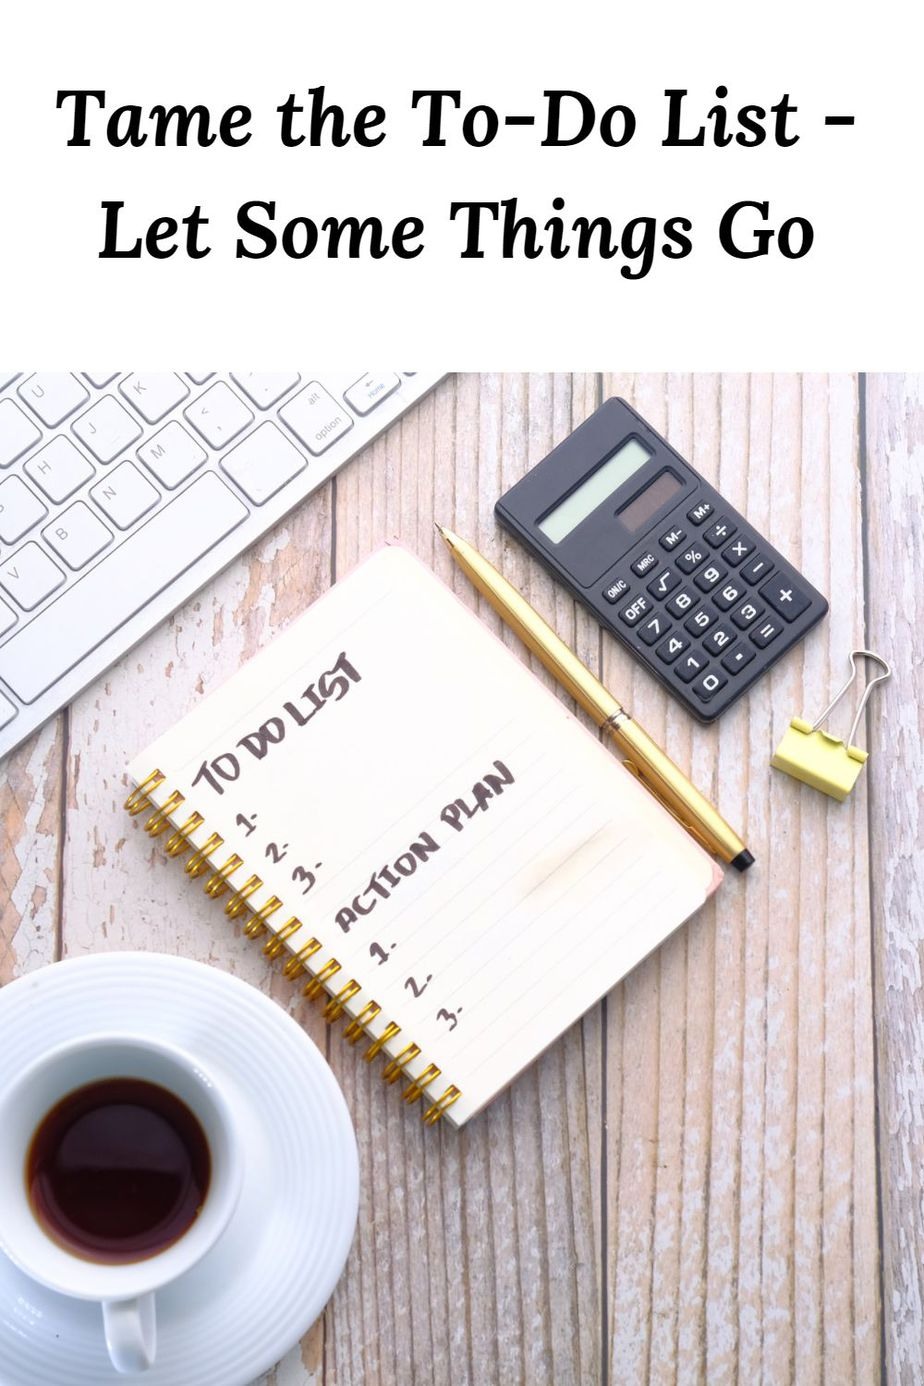 Tame the To-Do List - Let Some Things Go